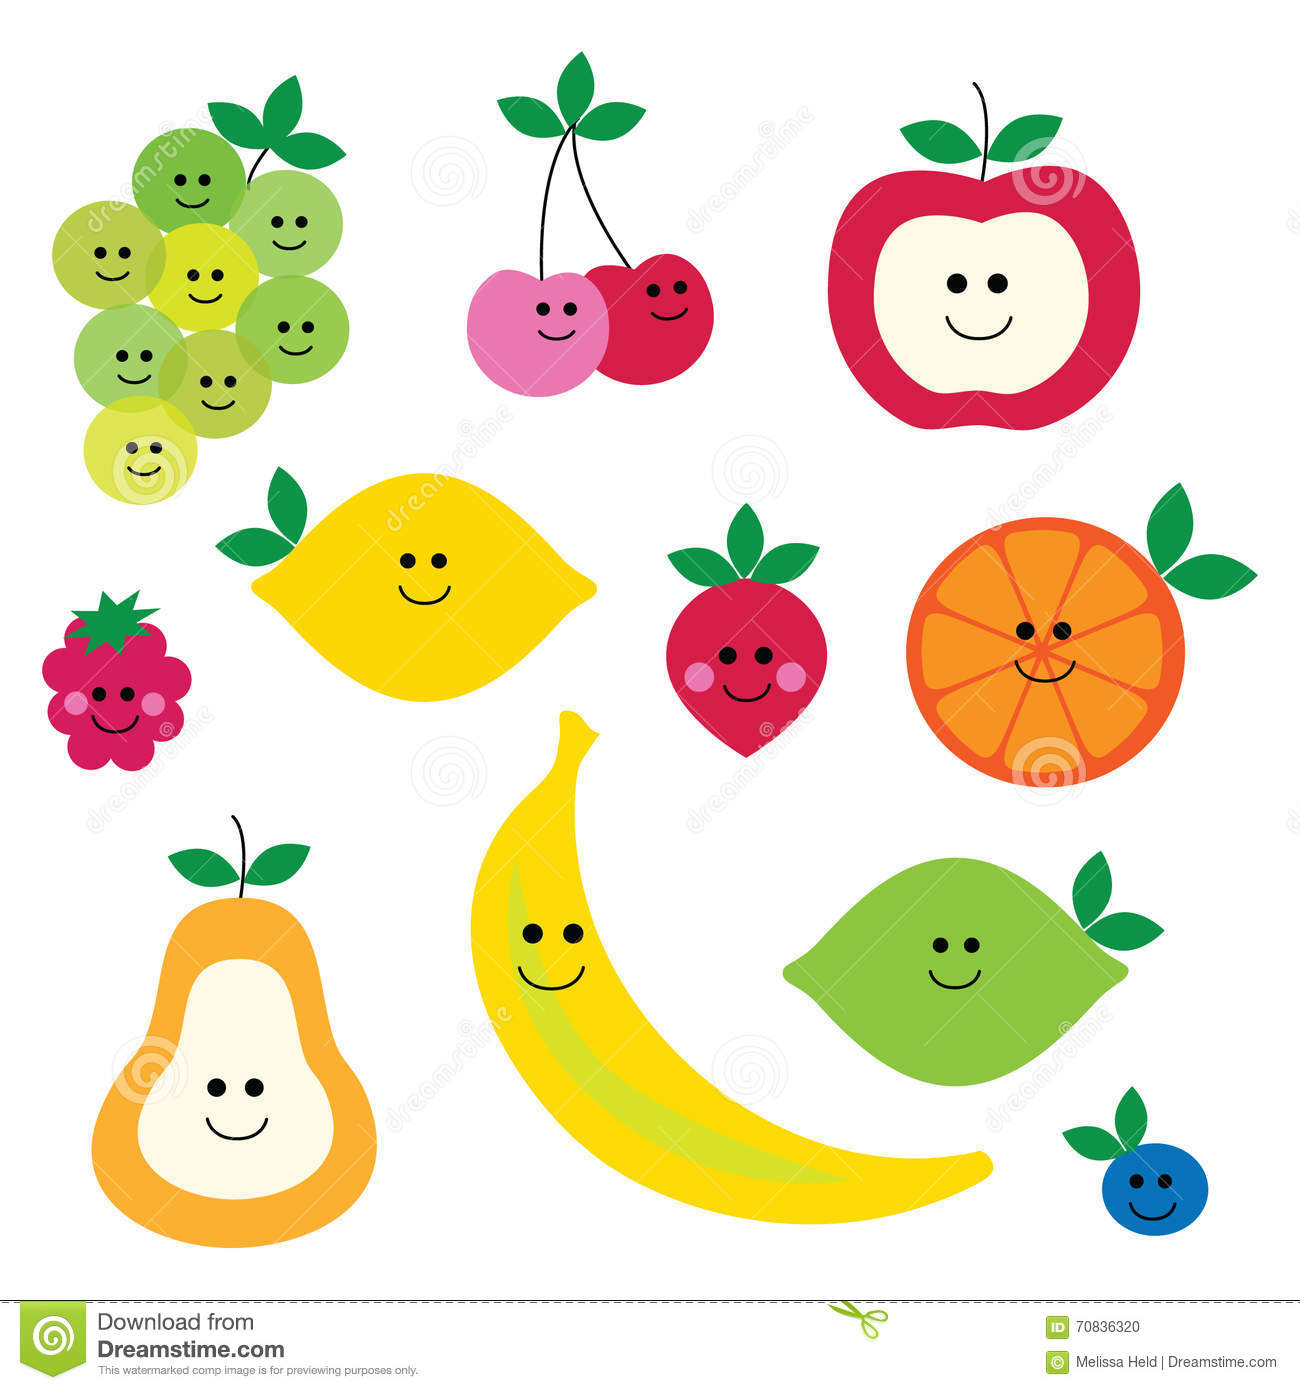 fruit with faces clipart stock illustration illustration Basket of Fruits and Vegetables Fruit Vegetable Horse Clip Art Black and White